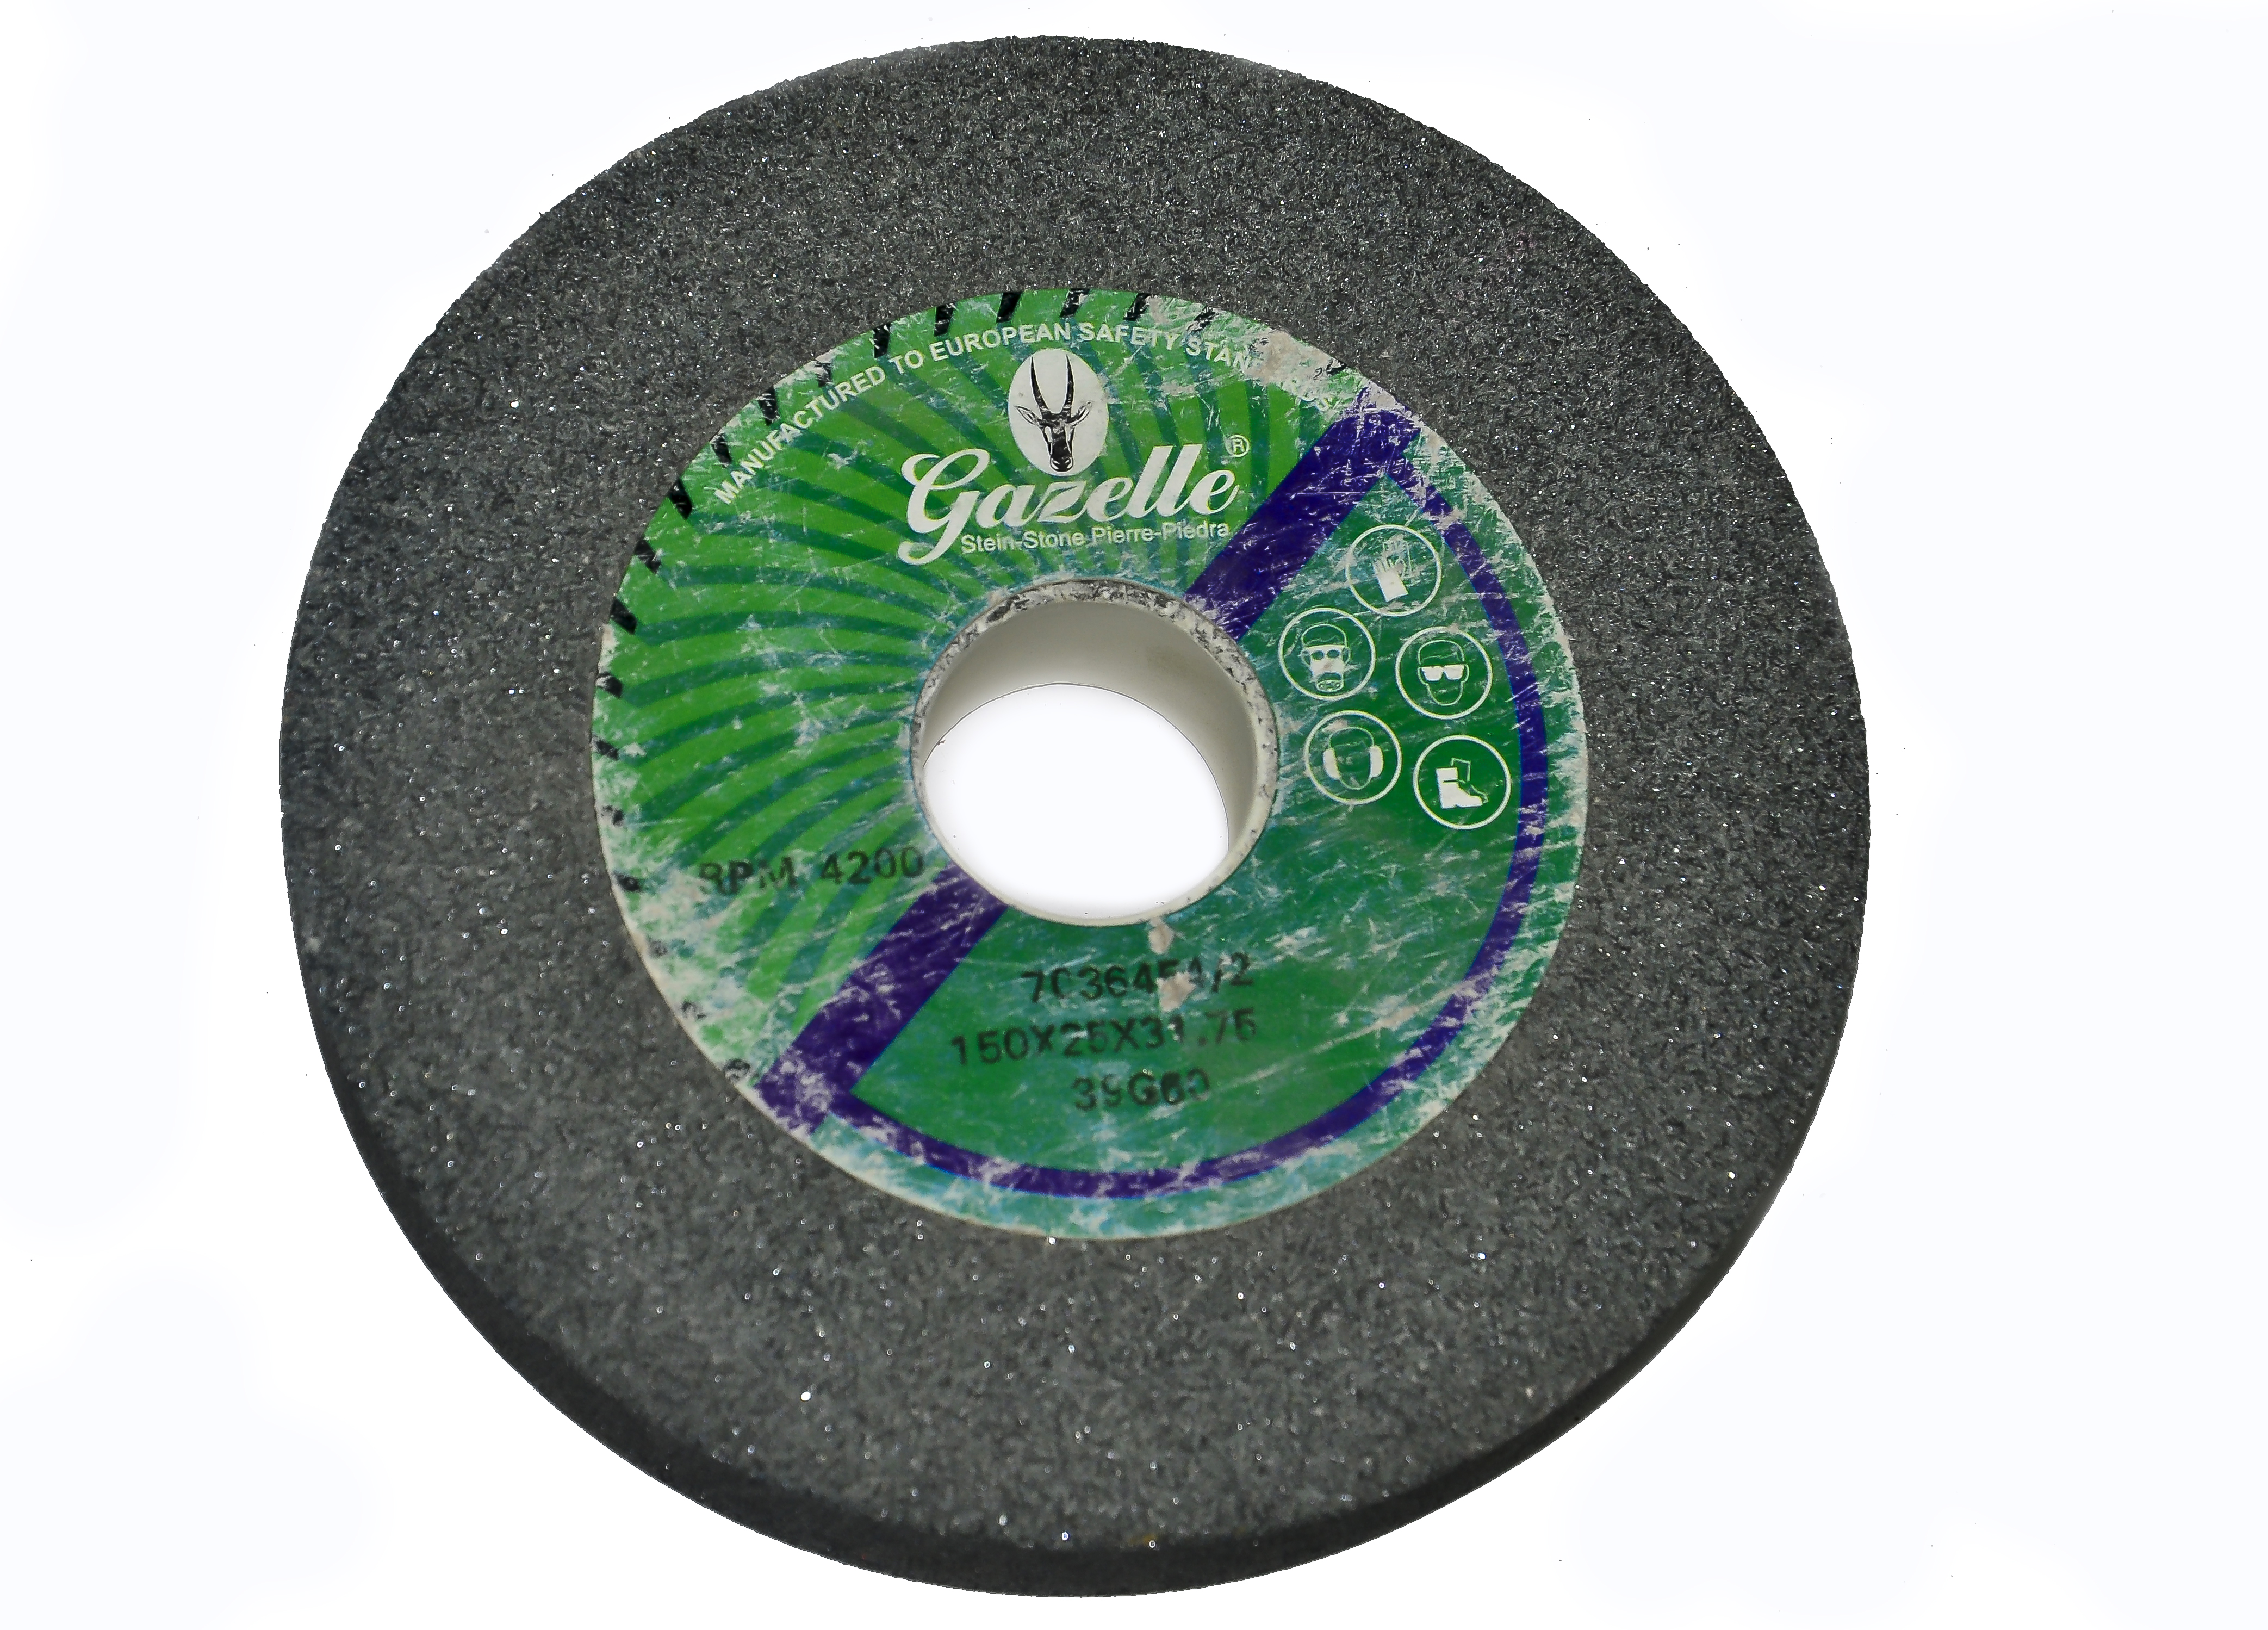 GAZELLE GAZ-15025-46B - Bench Grinding Wheels – Aluminium Oxide 150 x 25 x 31.75mm Rough